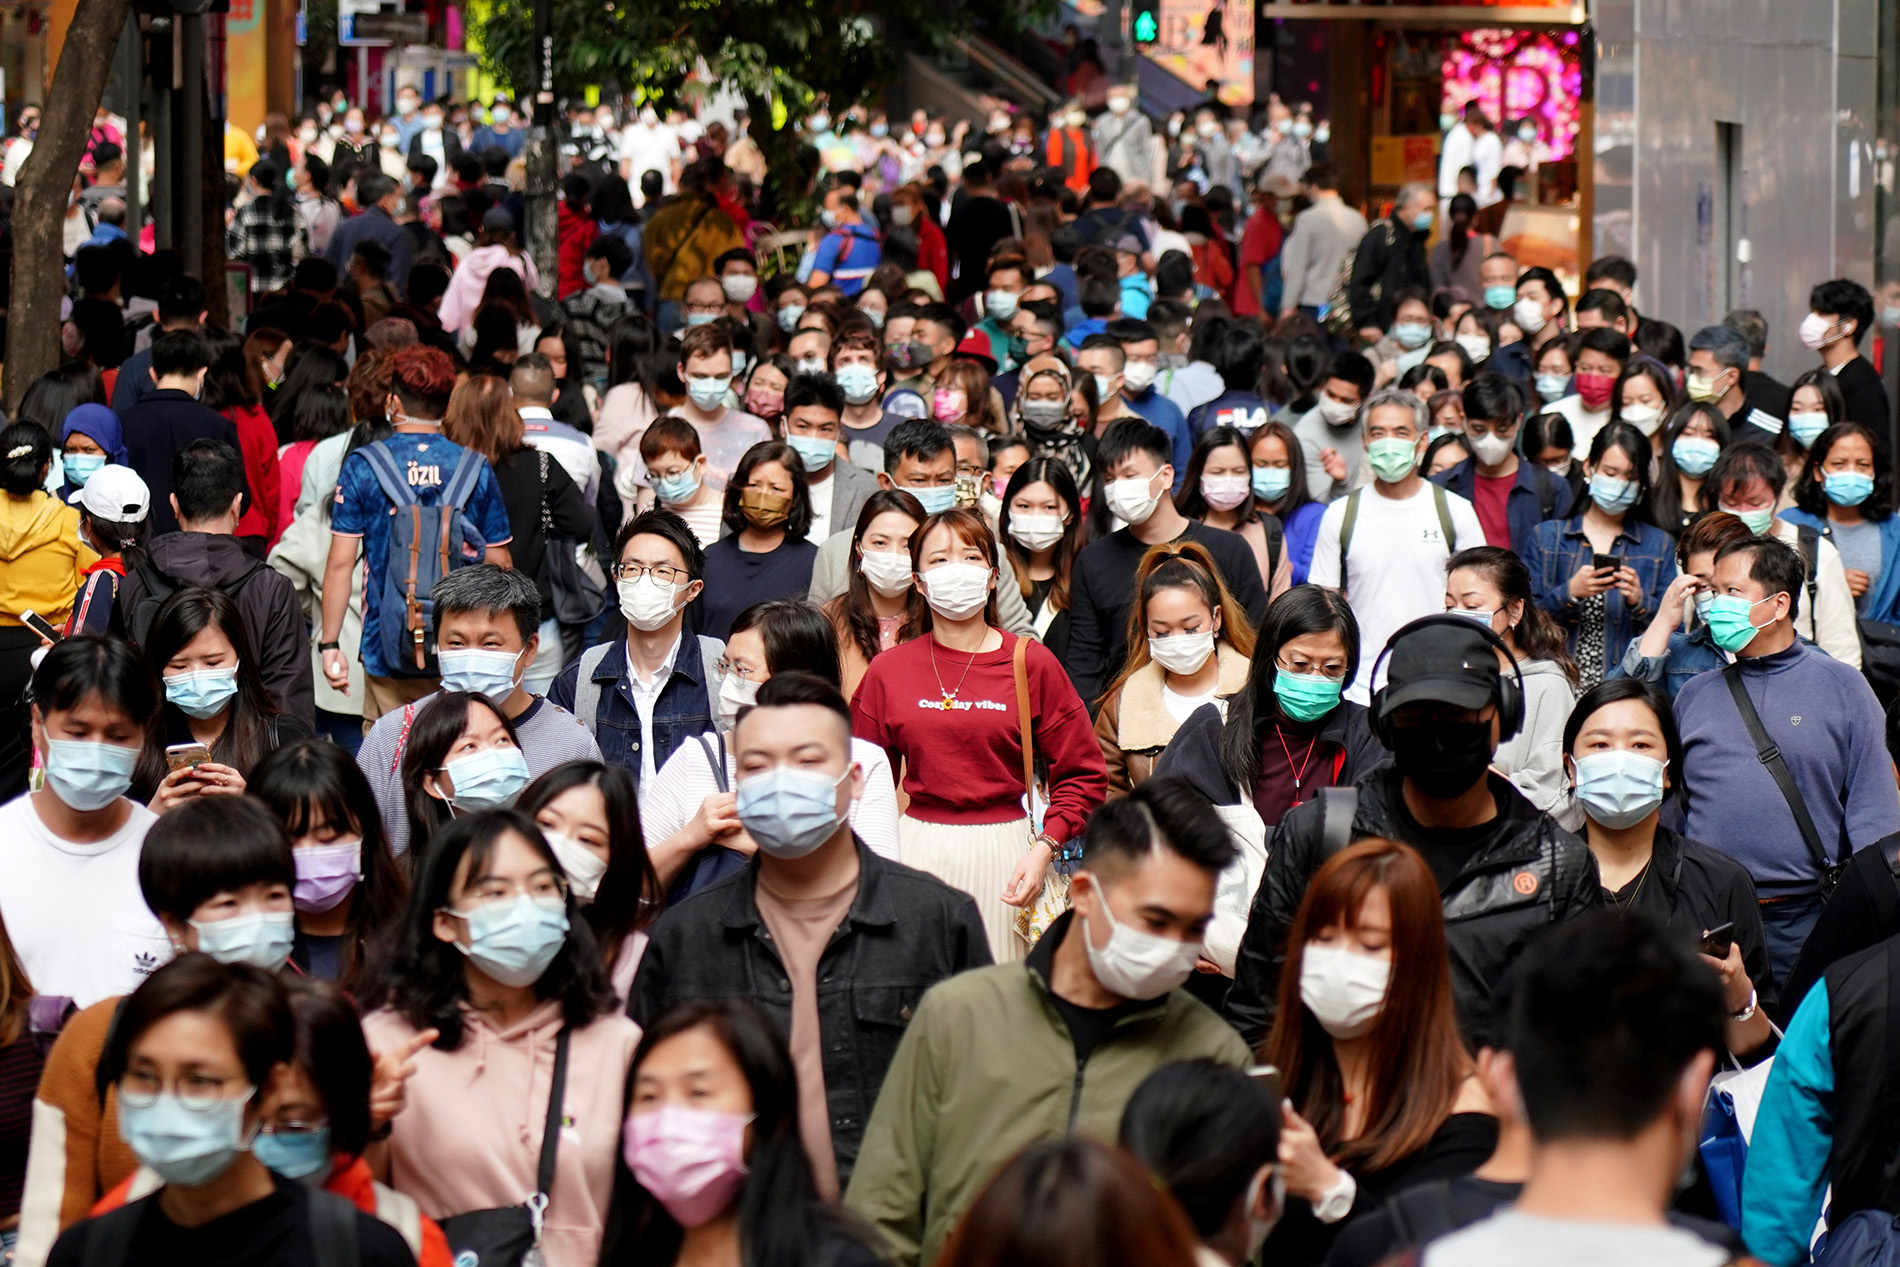 People wearing masks visit Causeway Bay on the third day of the Chinese New Year, on February 14, 2021, in Hong Kong.